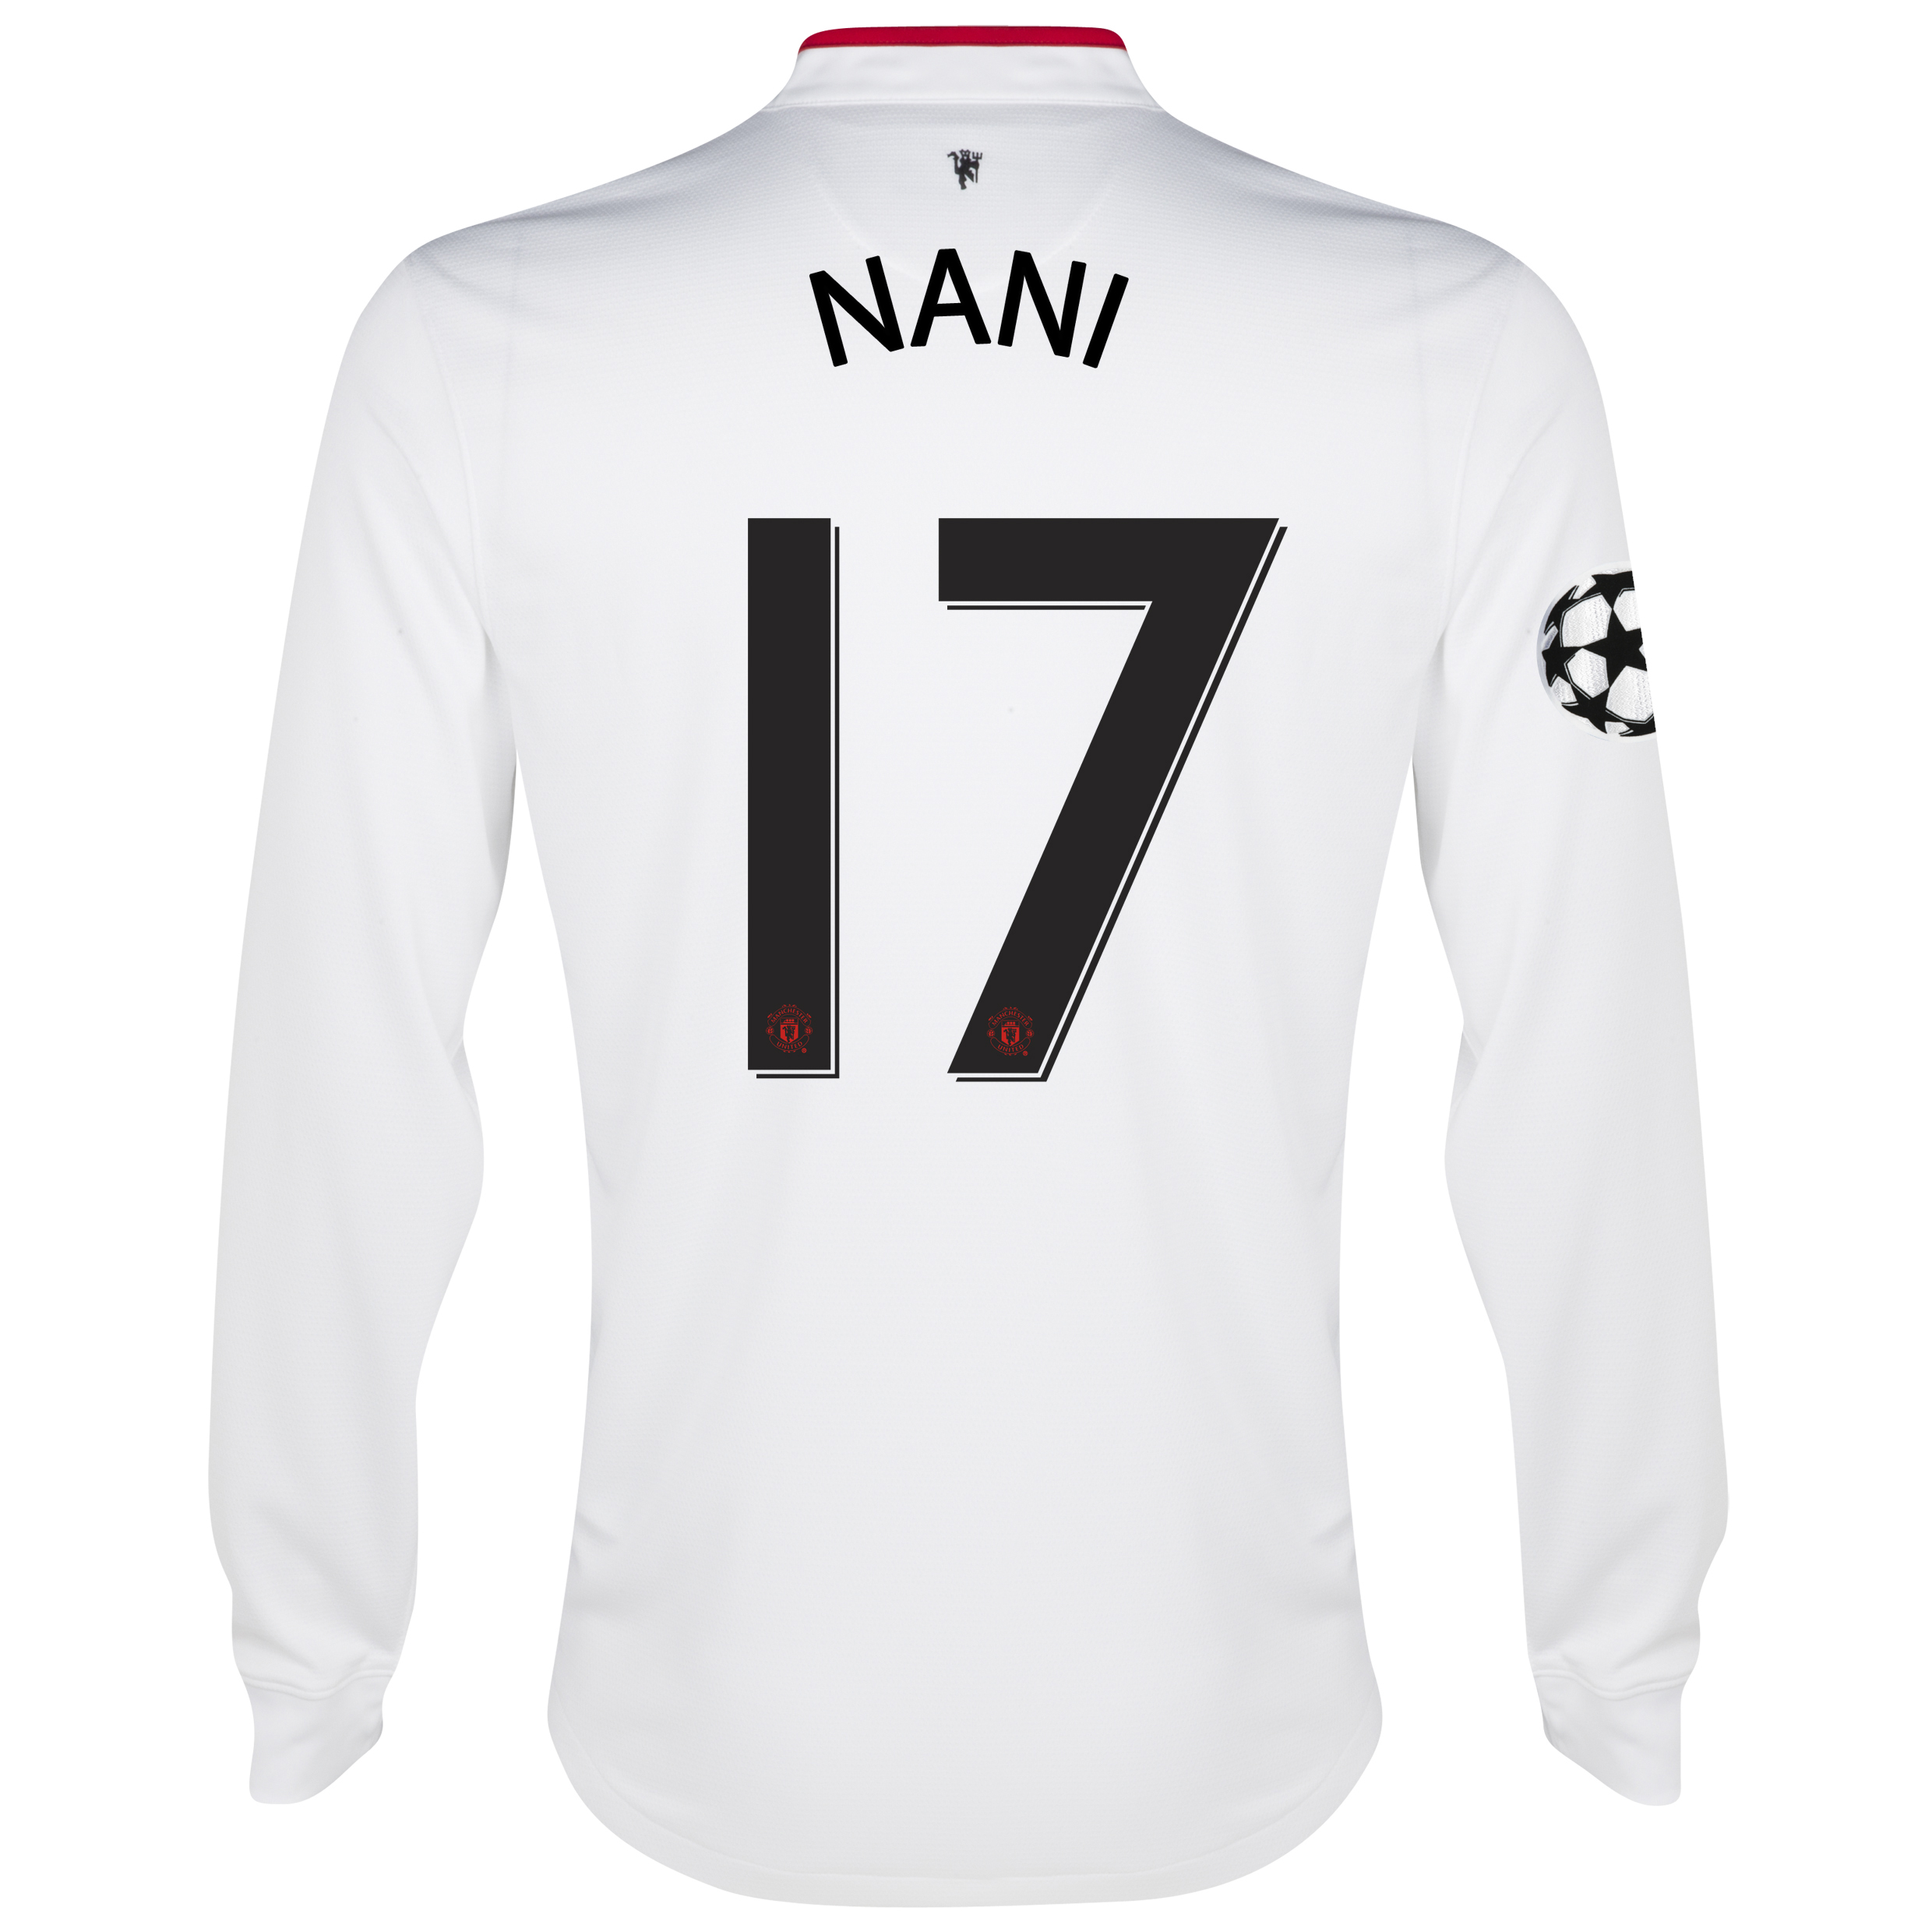 Manchester United UEFA Champions League Away Shirt 2012/13 - Long Sleeved - Kids with Nani 17 printing